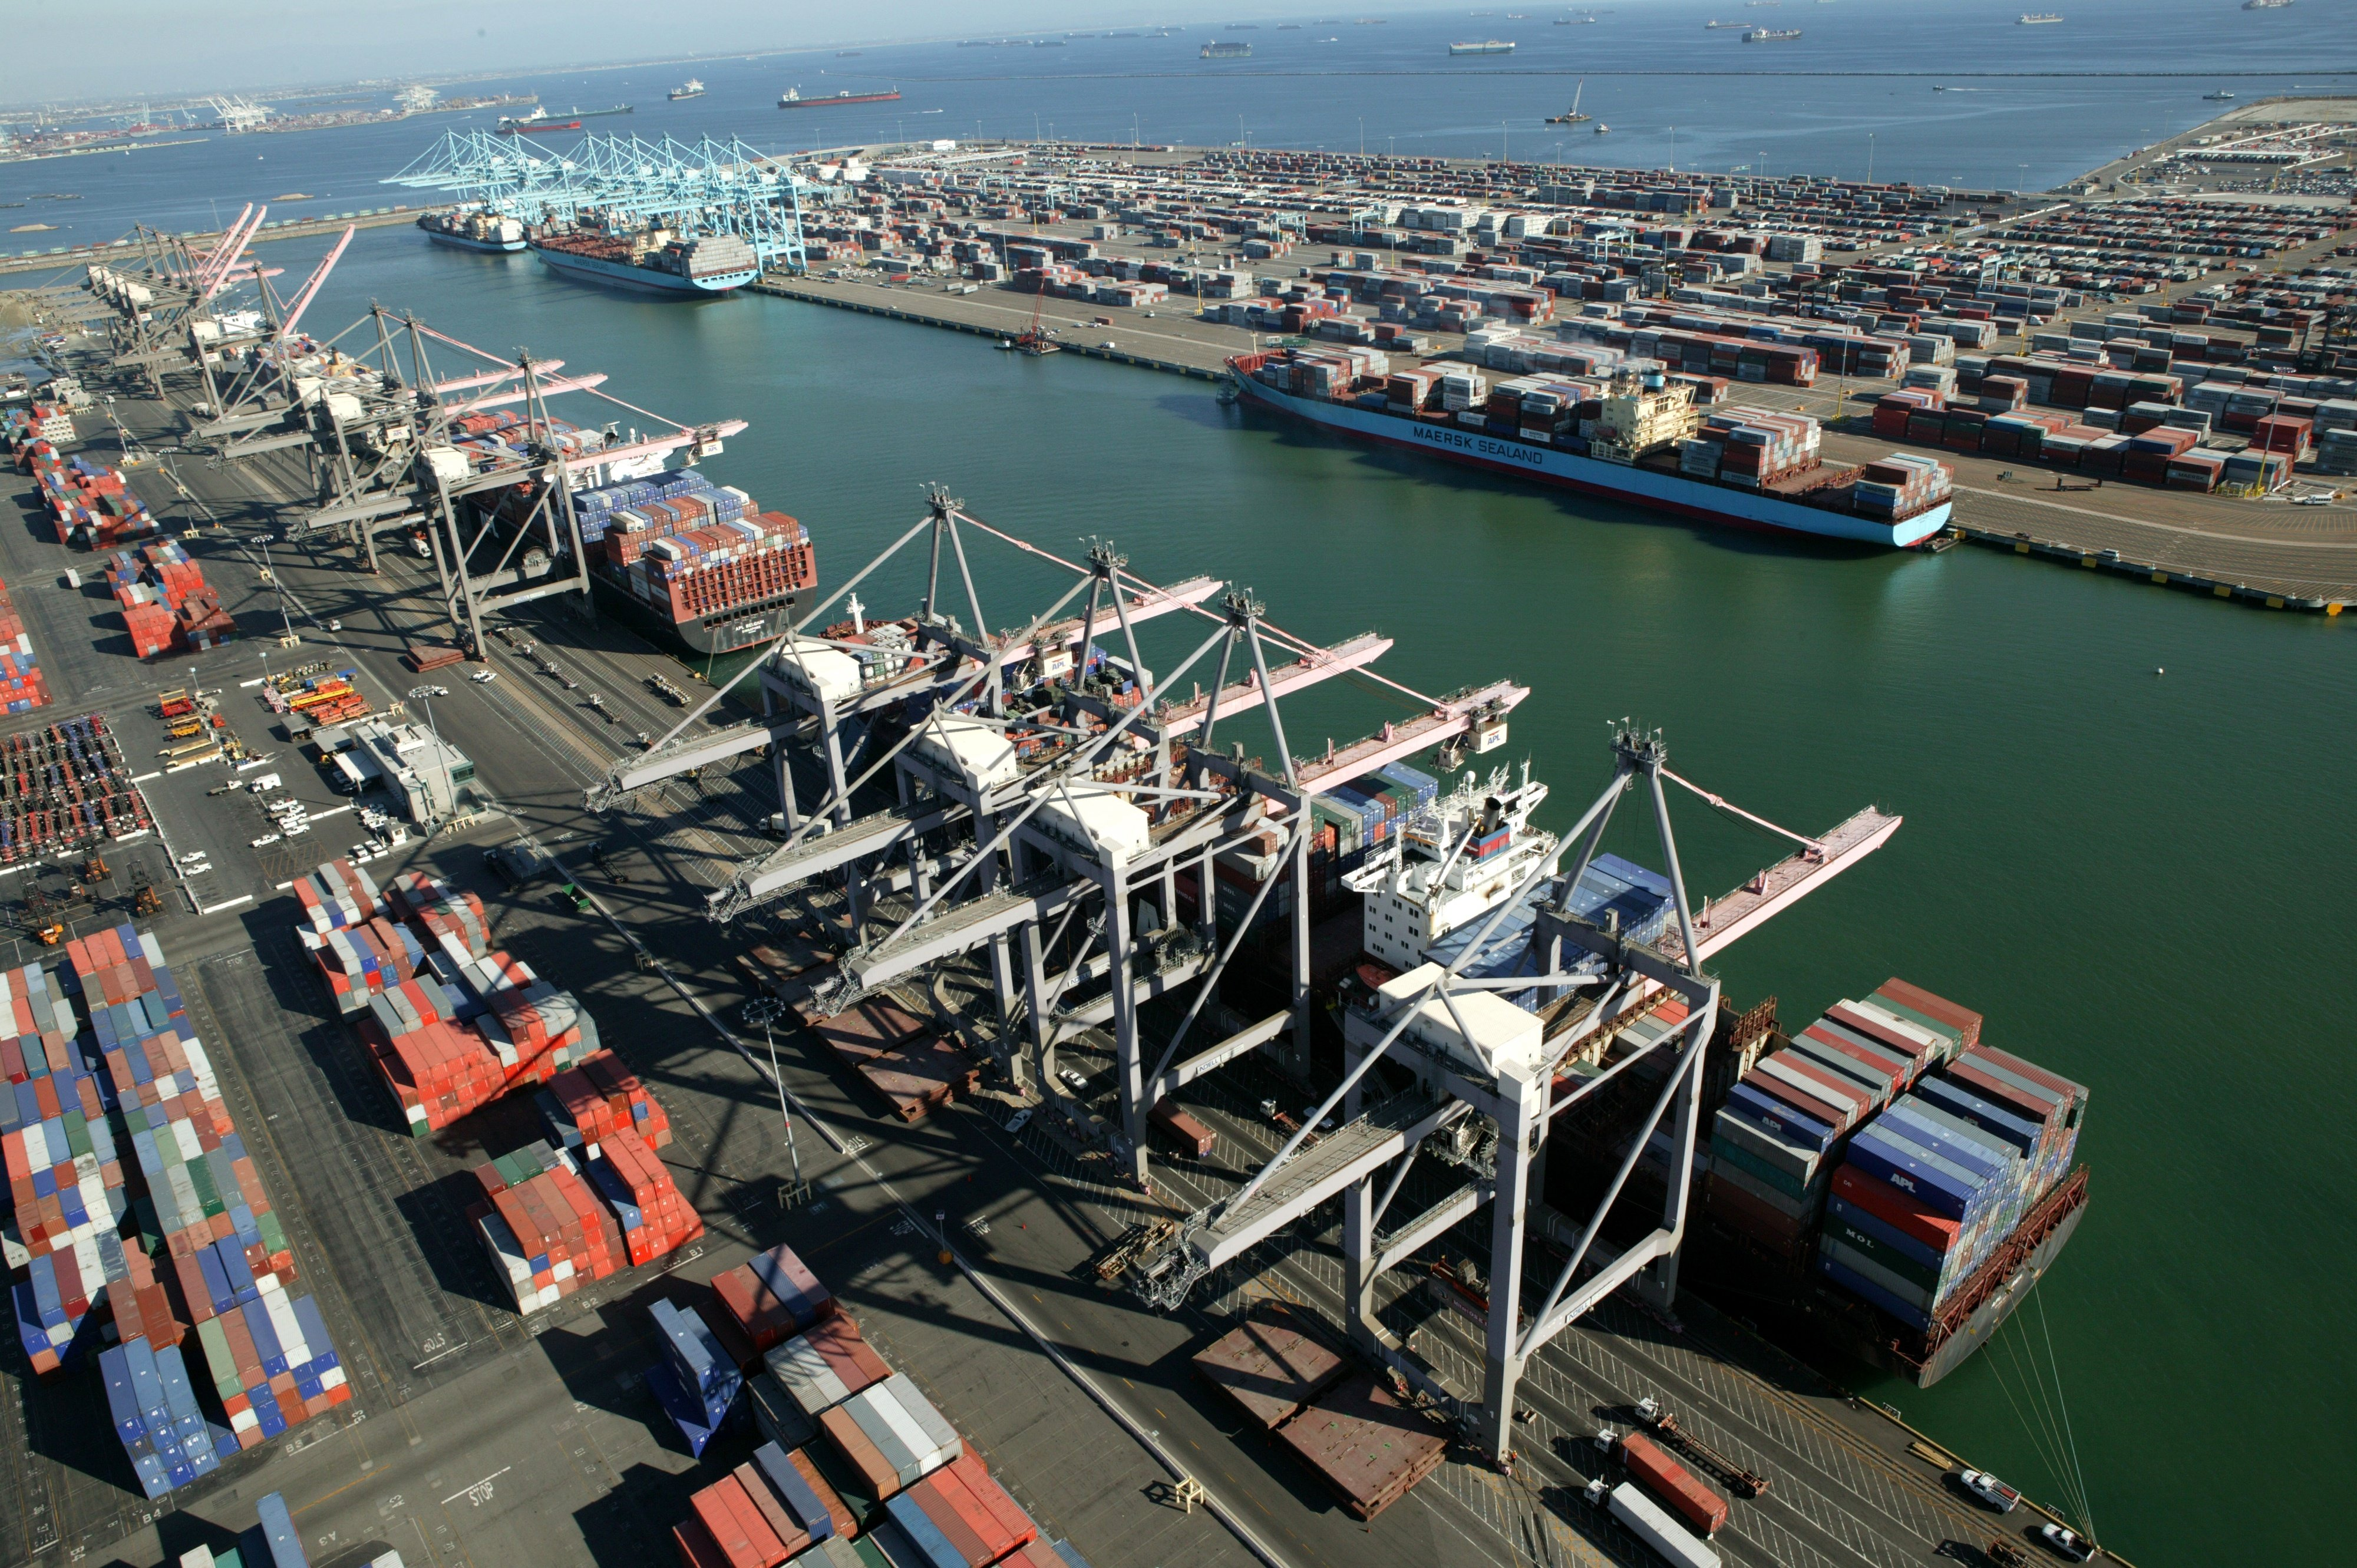 Port_of_LA_Pier 300_400 Container Terminals